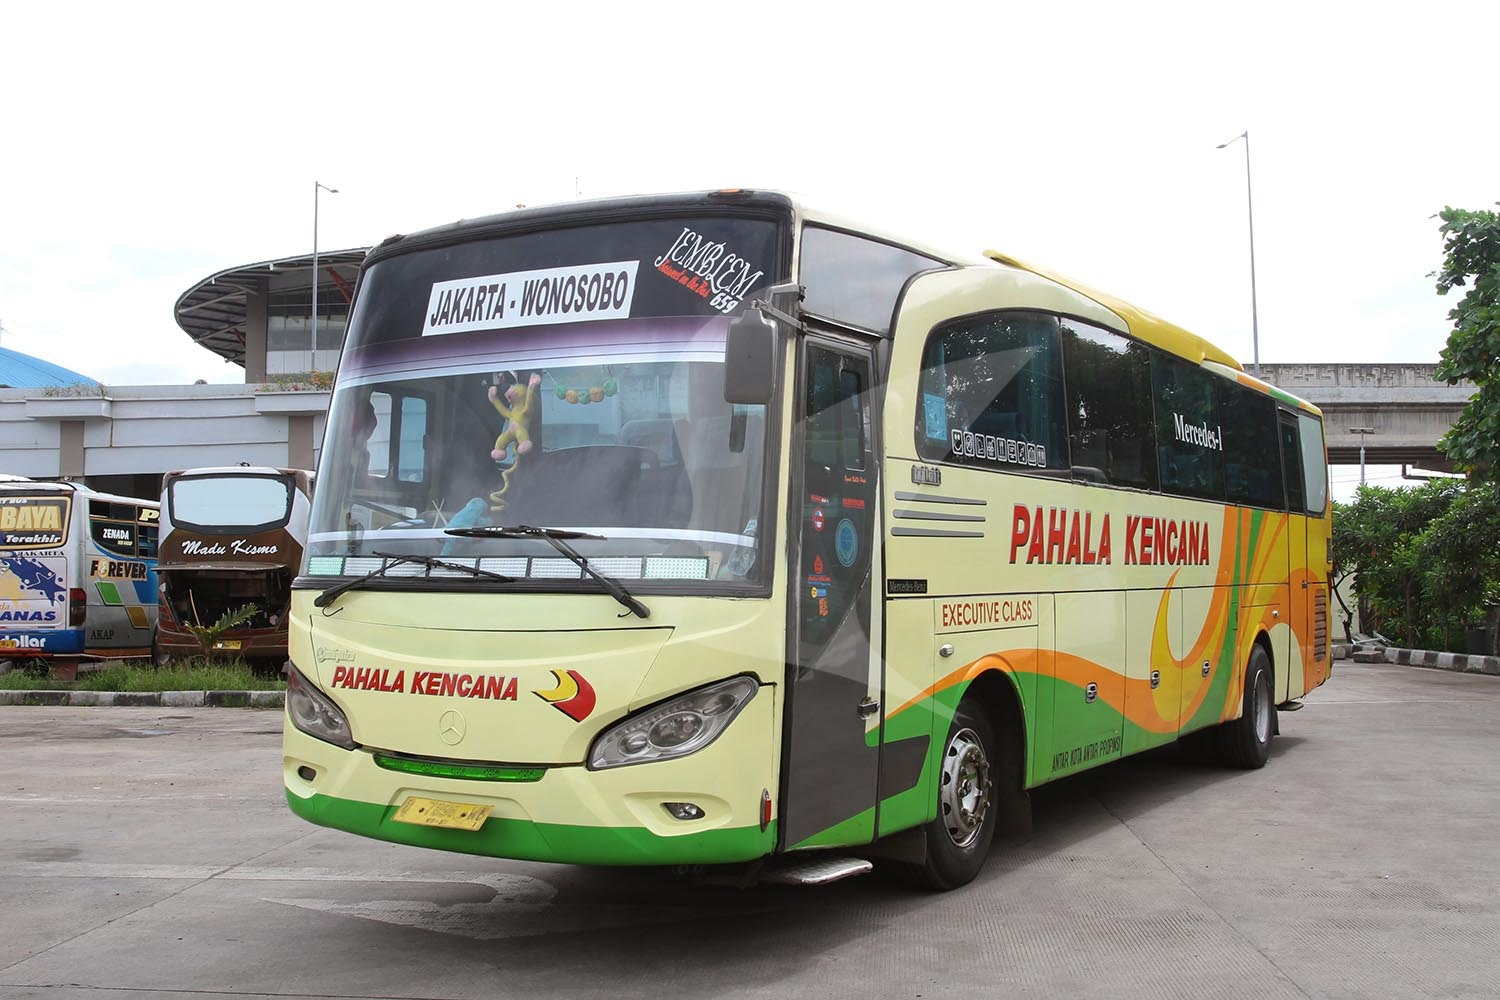 Terminal Poris Plawad Travel Indonesia